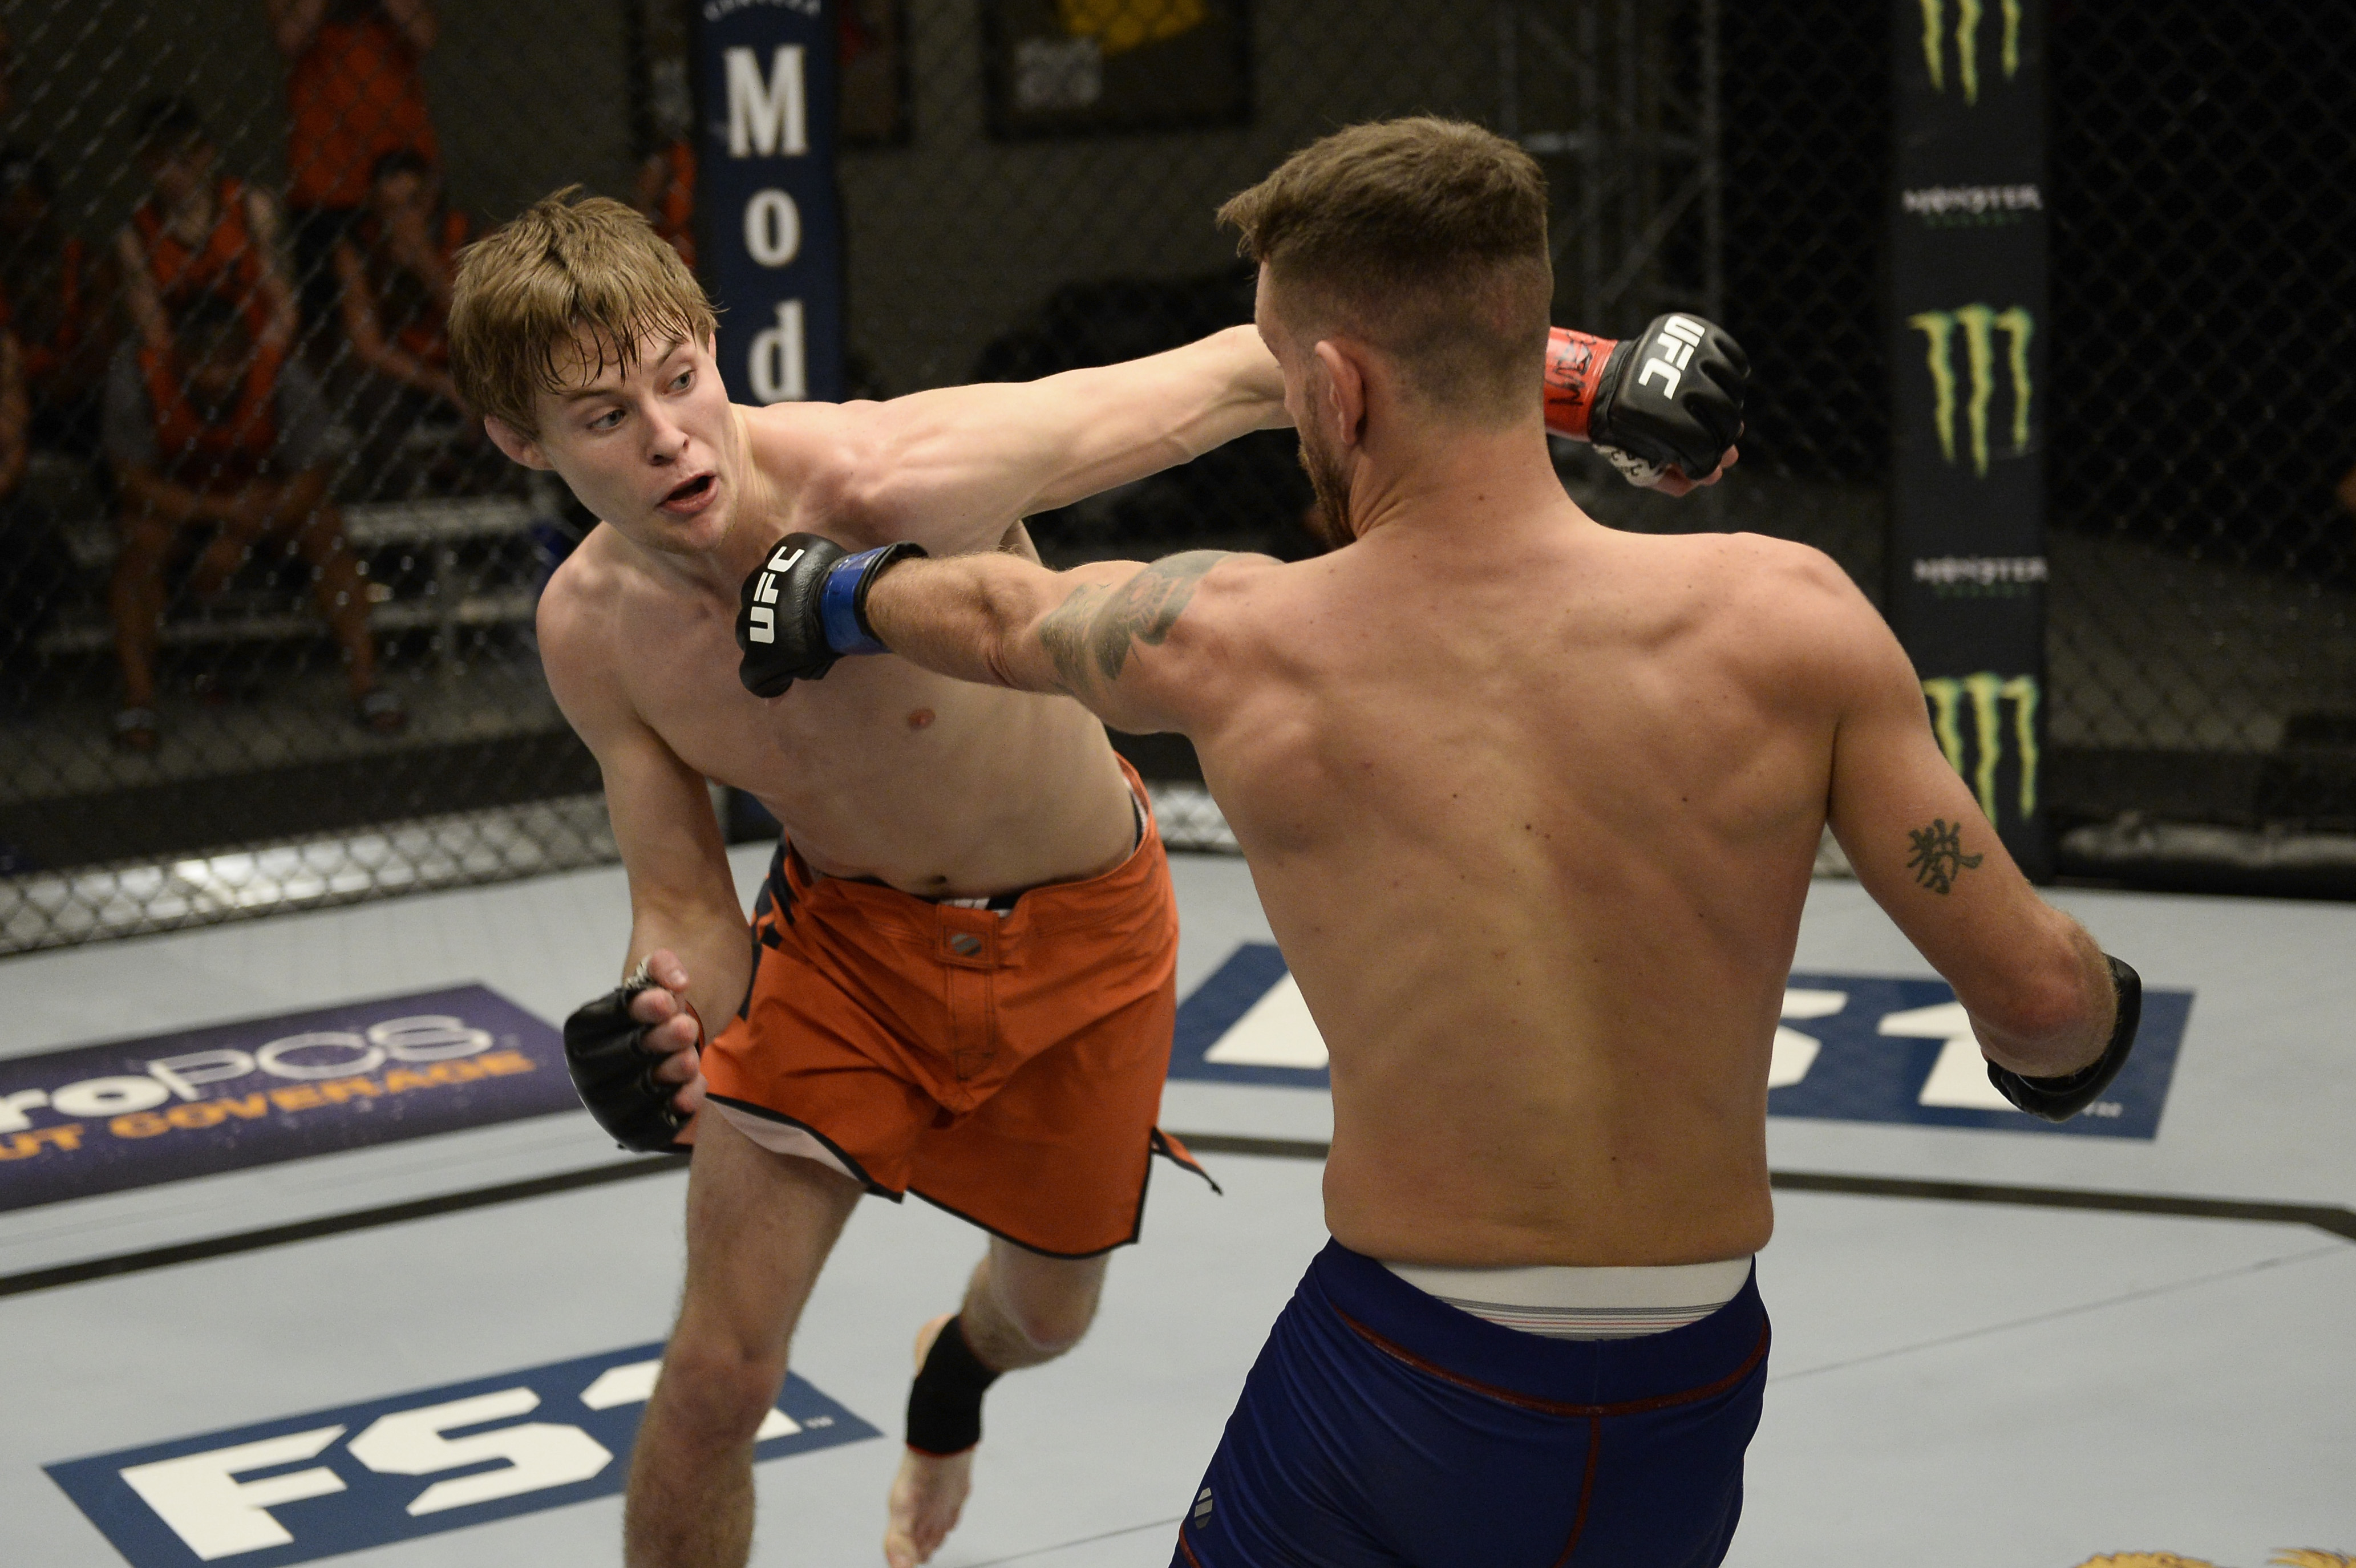 Bryce Mitchell (L) punches Jay Cucciniello during the filming of The Ultimate Fighter: Undefeated (Photo by Brandon Magnus/Zuffa LLC)